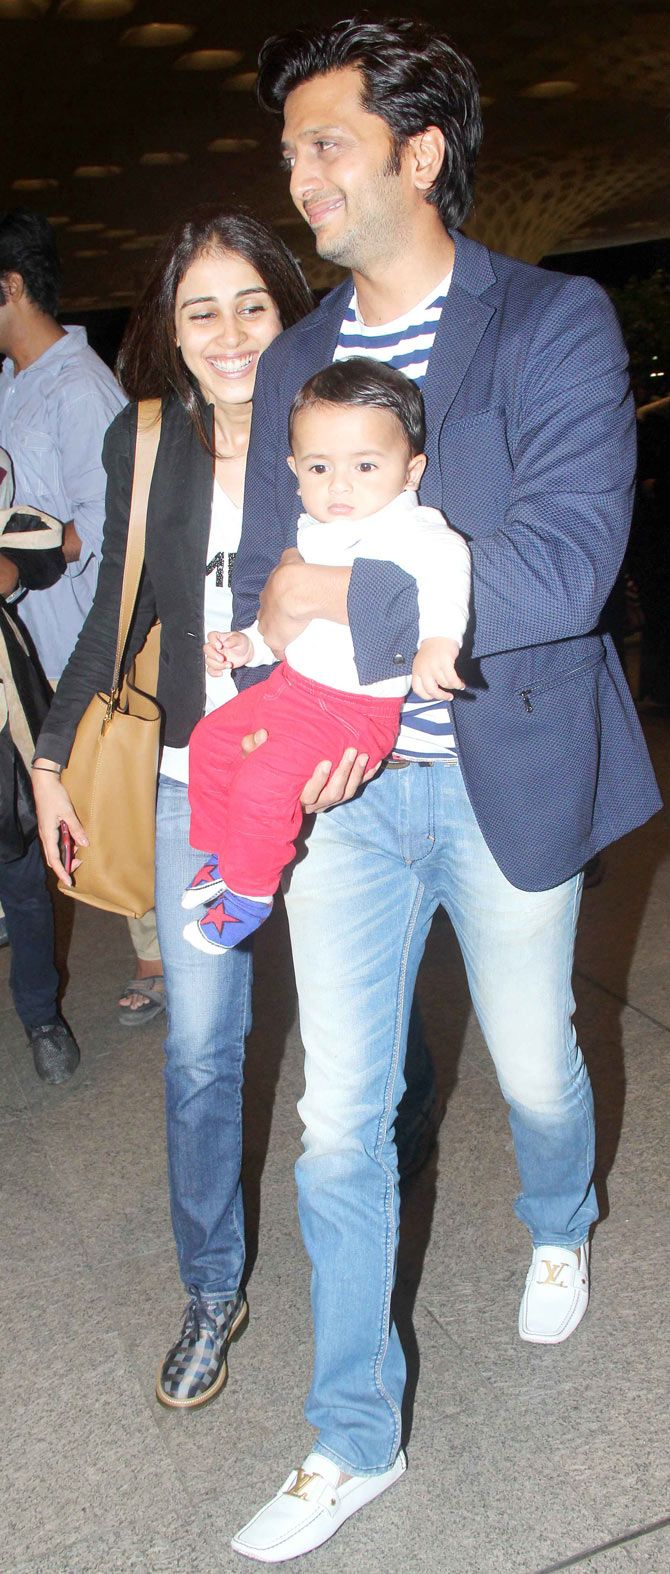 Riteish Deshmukh and wife Genelia D'Souza Deshmukh with son Riaan at the Mumbai airport enroute to #IIFA Awards in Malaysia. #Bollywood #Fashion #Style #Beauty #Handsome #Cute